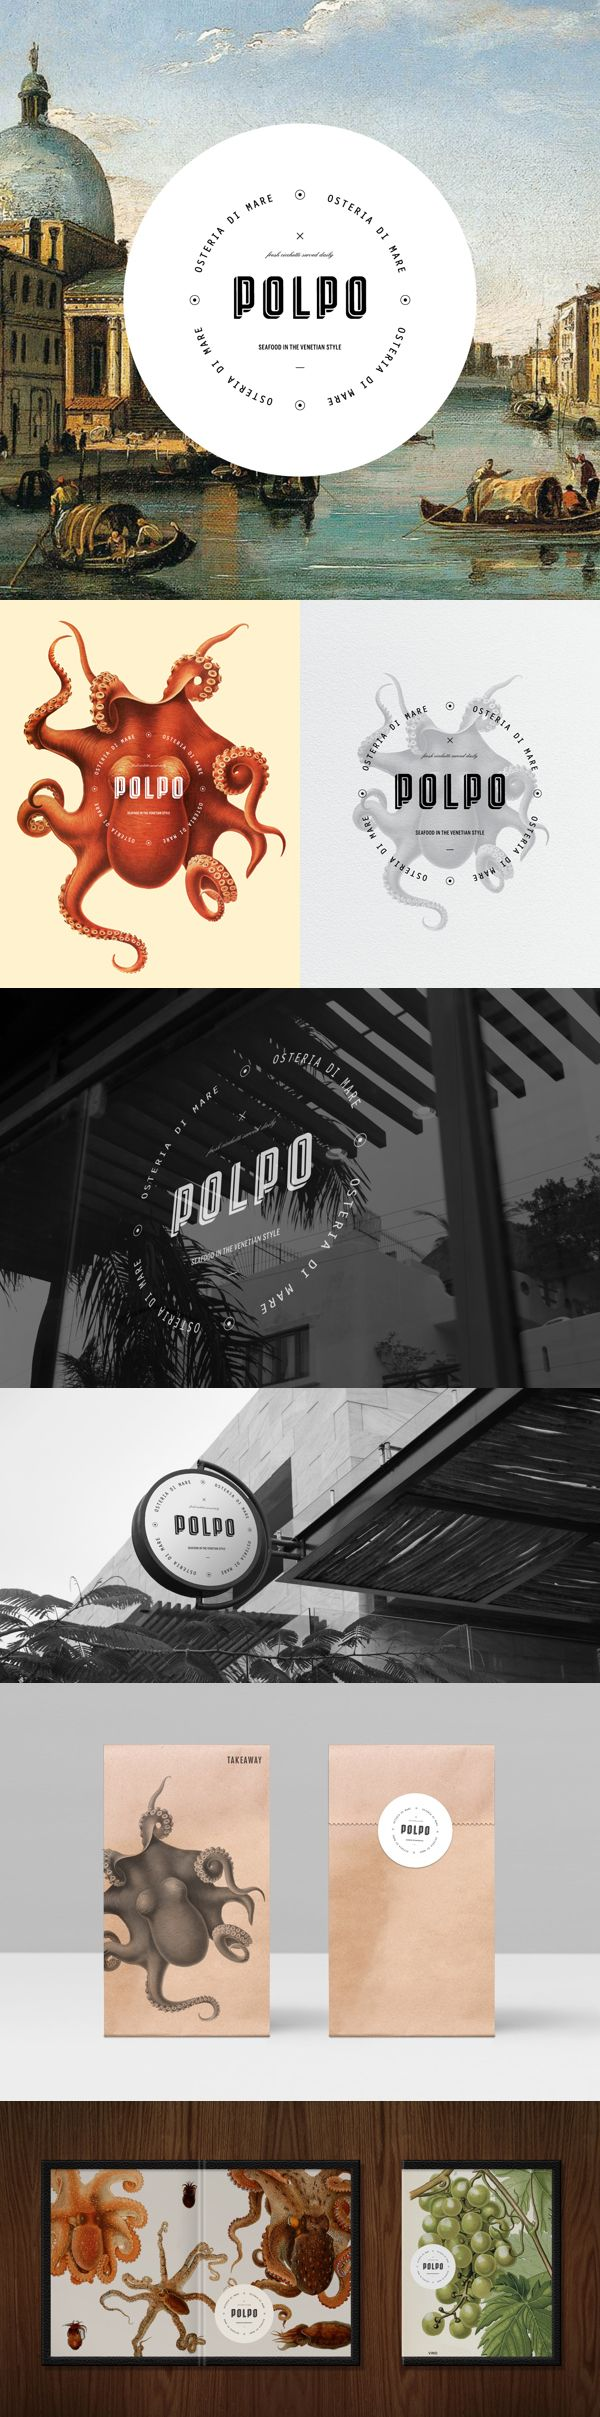 identity / Polpo Restaurant  |  more brand identities should include octopus (octopie?). Actually, no they shouldn't, coz it would devalue the brilliance of this one.